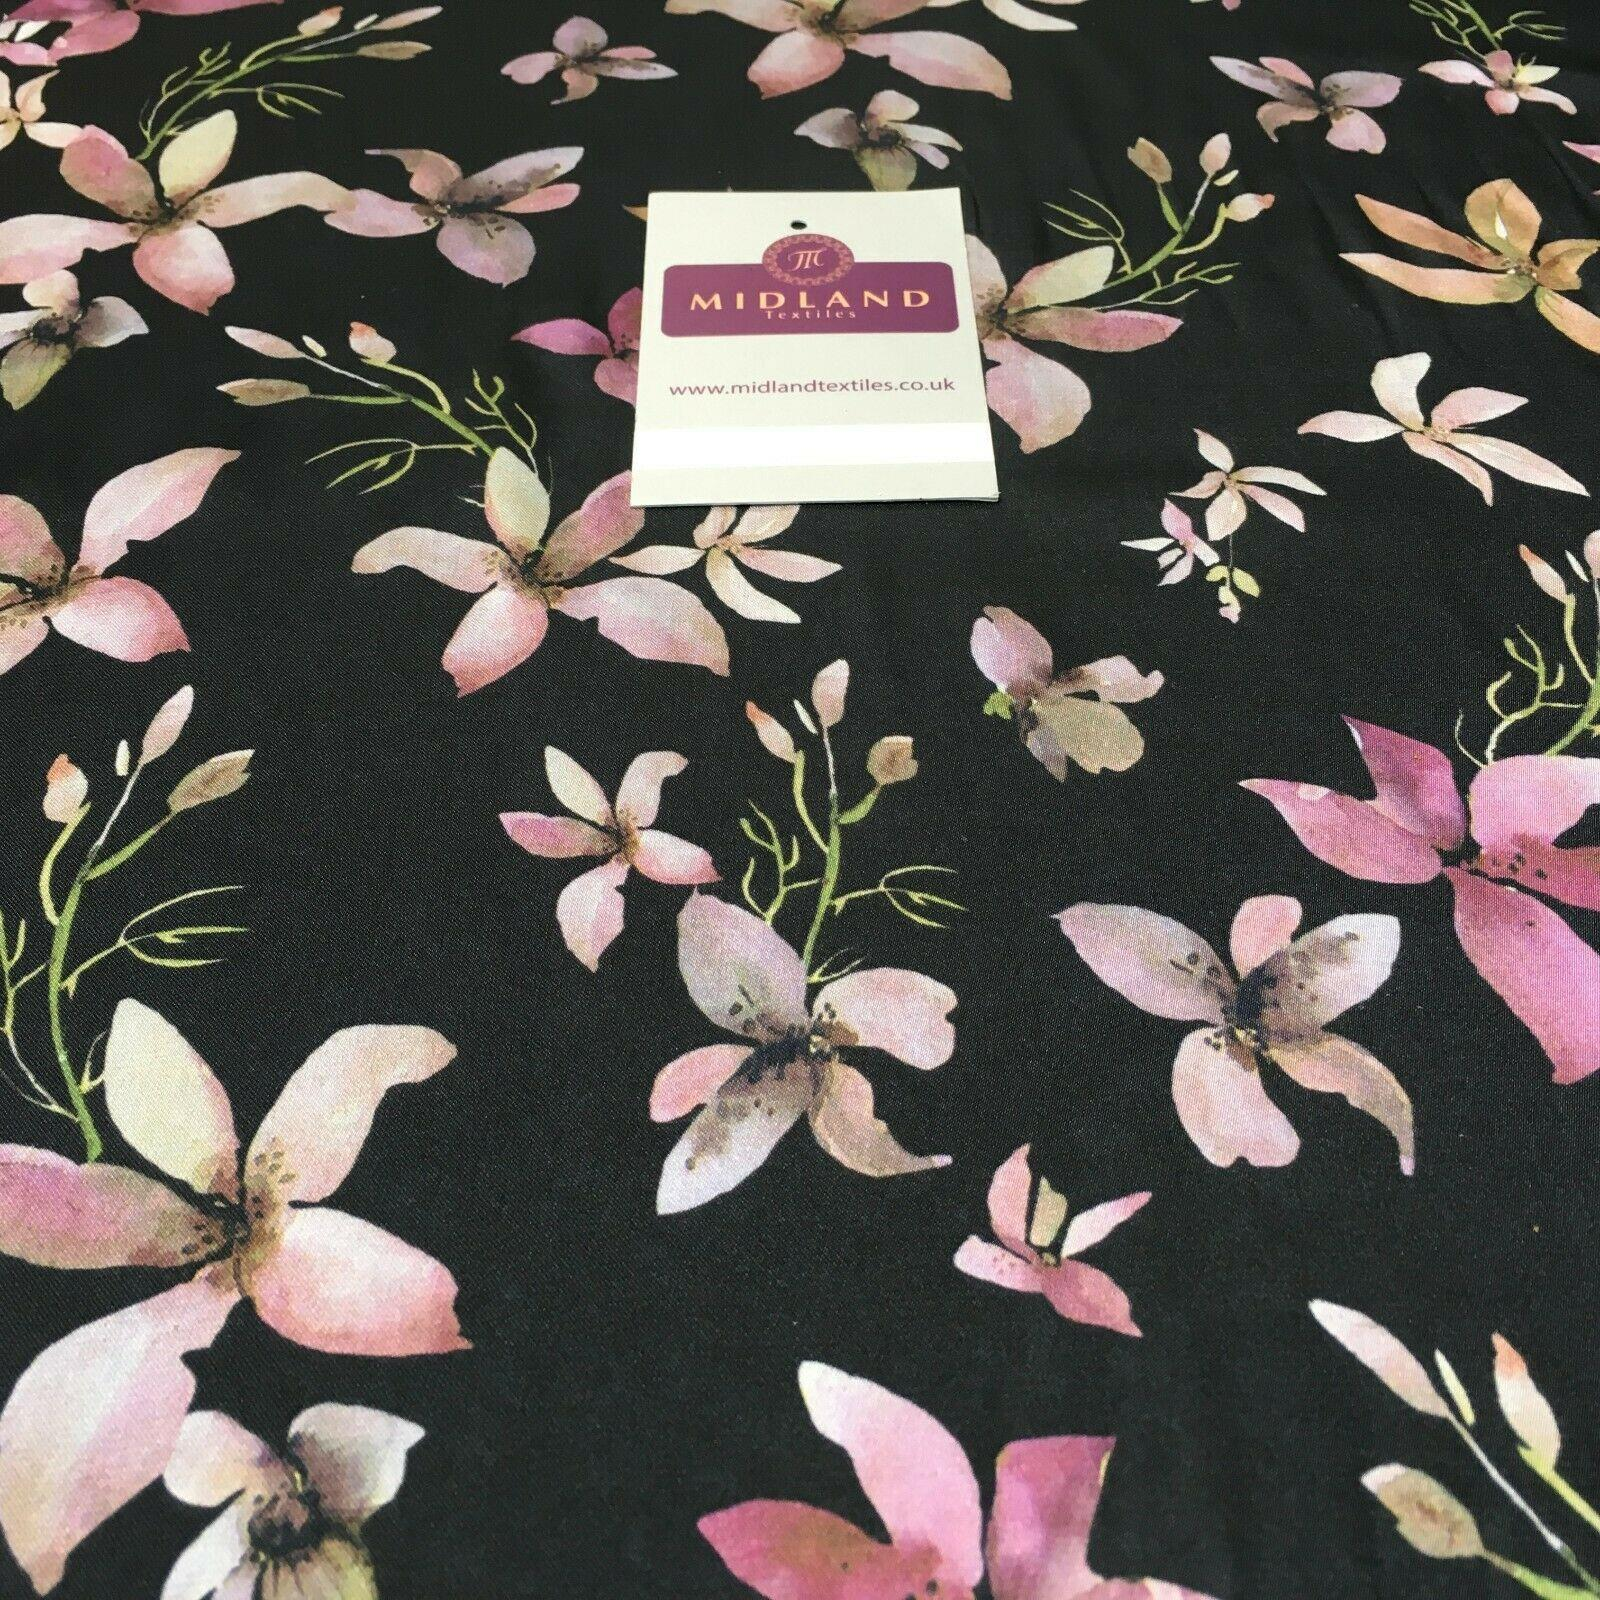 Floral Printed Silky Charmeuse Lightweight Satin Dress Fabric 150cm Wide MR1071